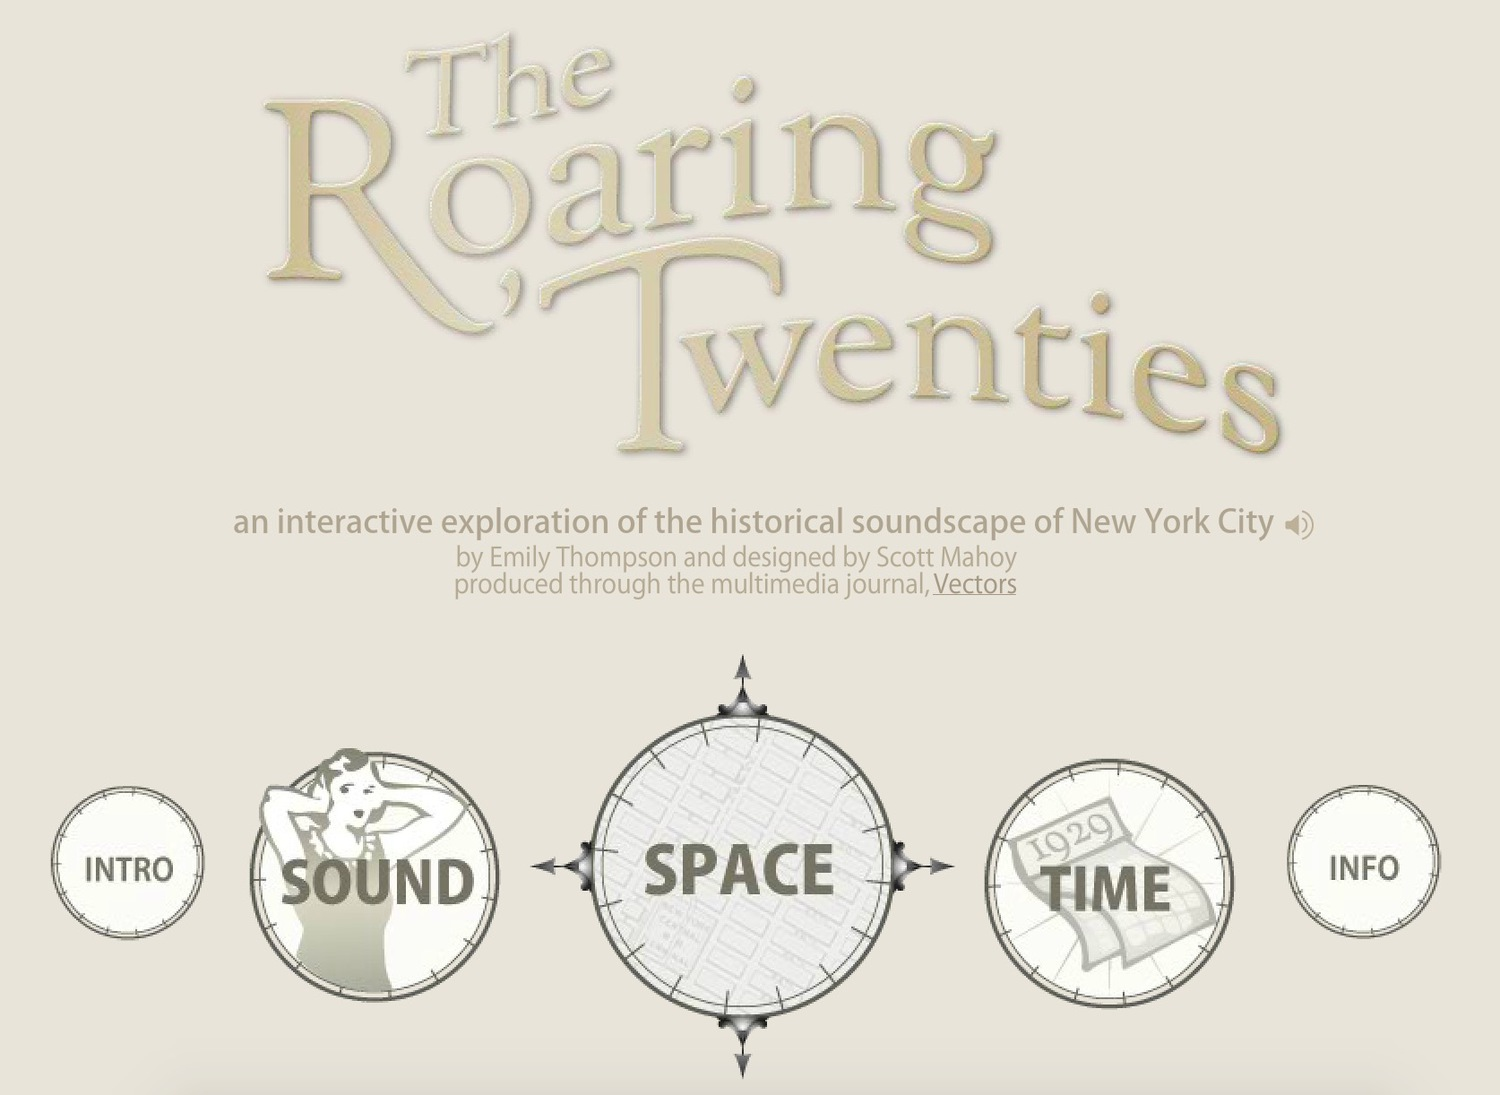 The Roaring Twenties, an Interactive Exploration of the Historical Soundscape of New York City